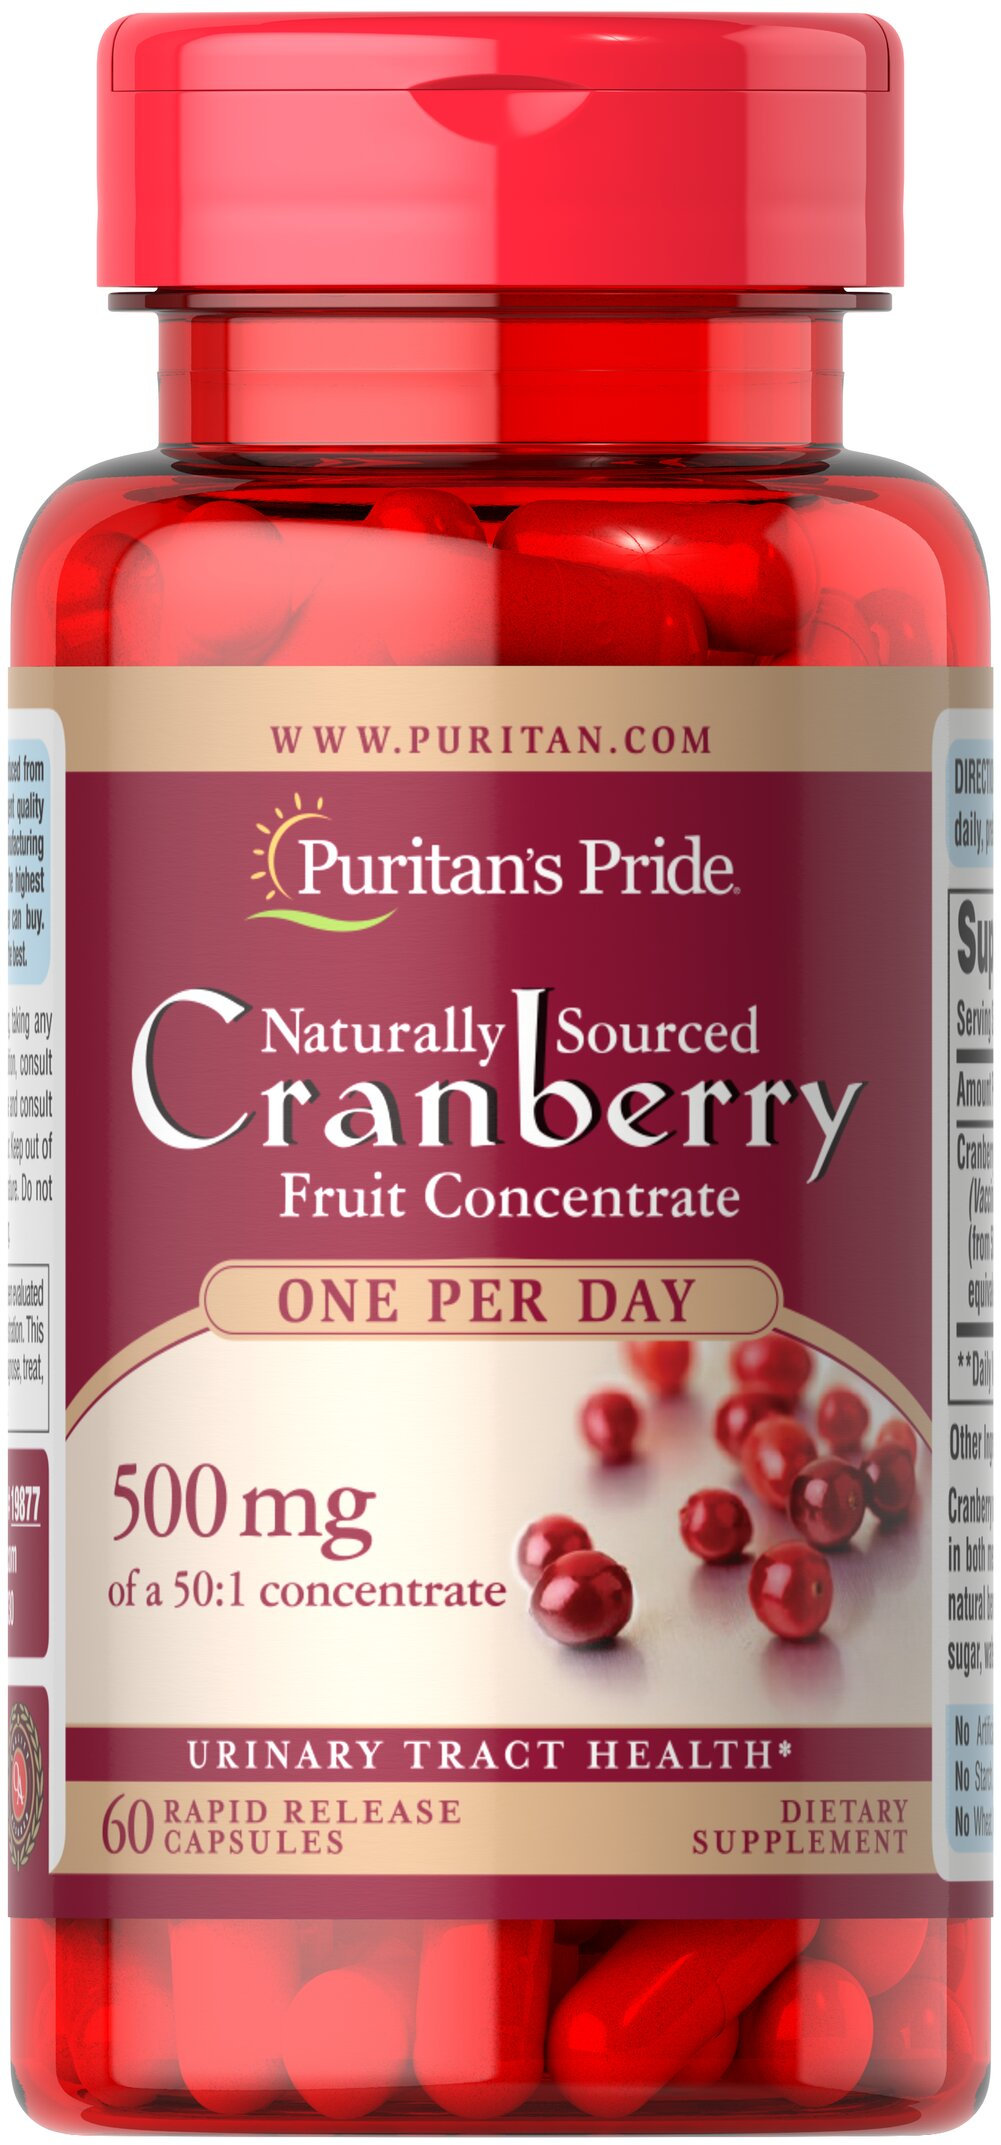 One A Day Cranberry <p>Equivalent to 25,000 mg of Cranberry Fruit per Capsule.</p><p>For years, health experts have recommended cranberry to help promote urinary tract health.**</p><p>Each dose provides the natural benefits of the whole cranberry without any preservatives, sugars, water, flavoring or color.</p> 60 Capsules 500 mg $9.34